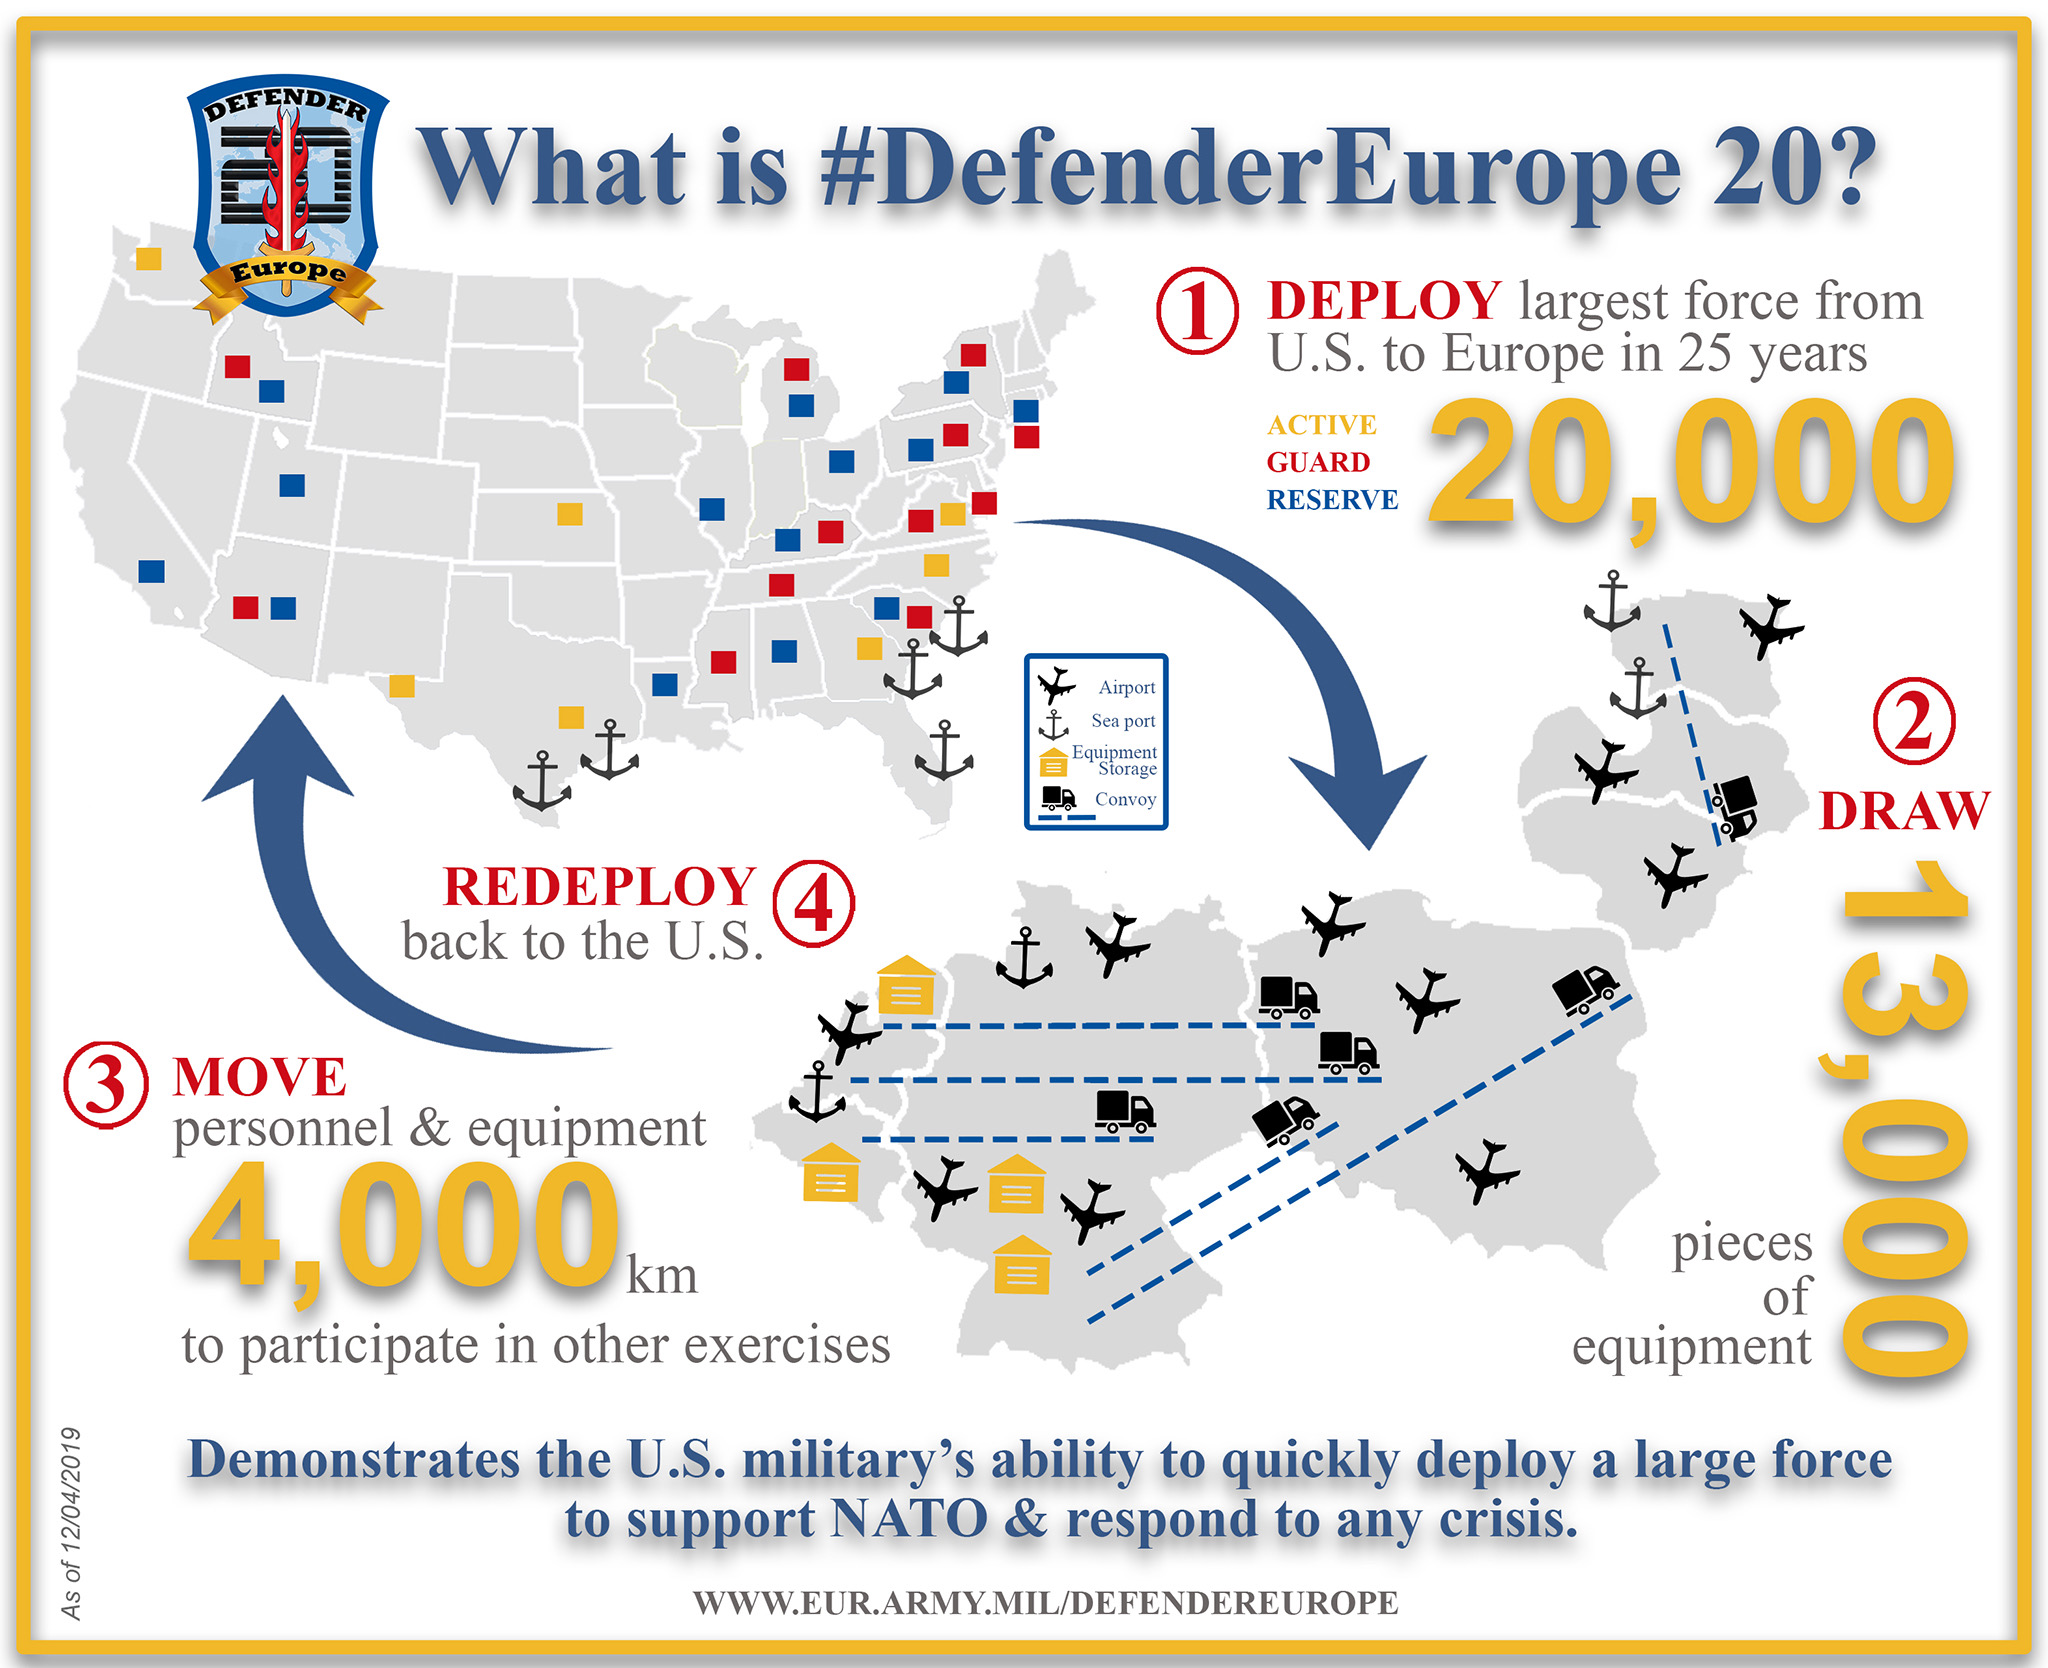 U.S. To Carry Out Biggest Deployment to Europe Since Cold War, Defender-Europe 2020 Nears